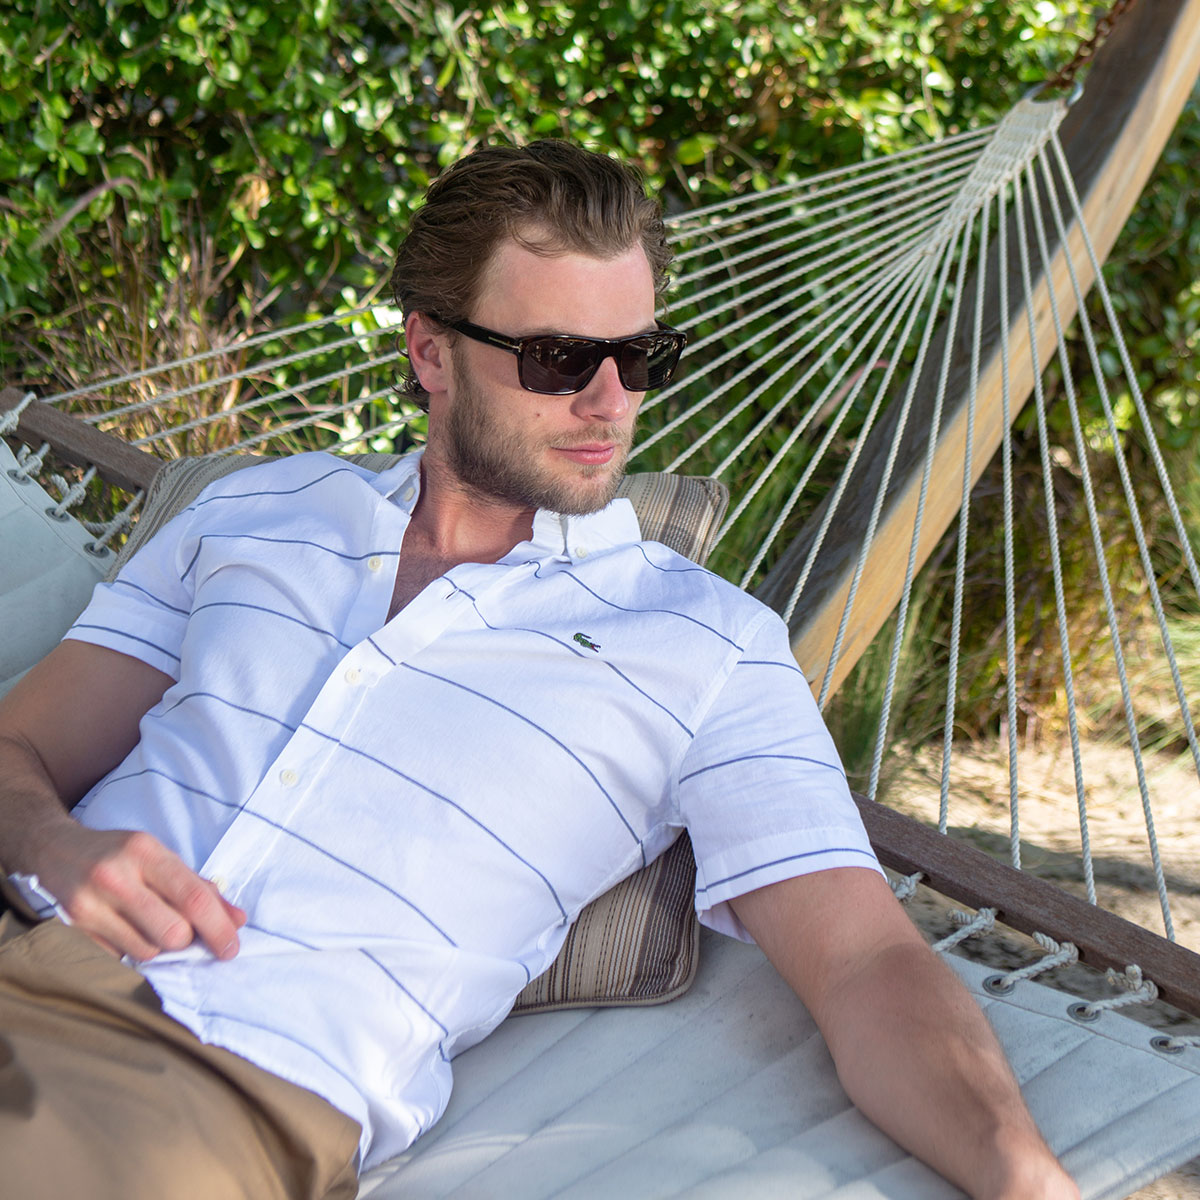 Man lying on a hammock wearing a white short sleeve lacoste shirt